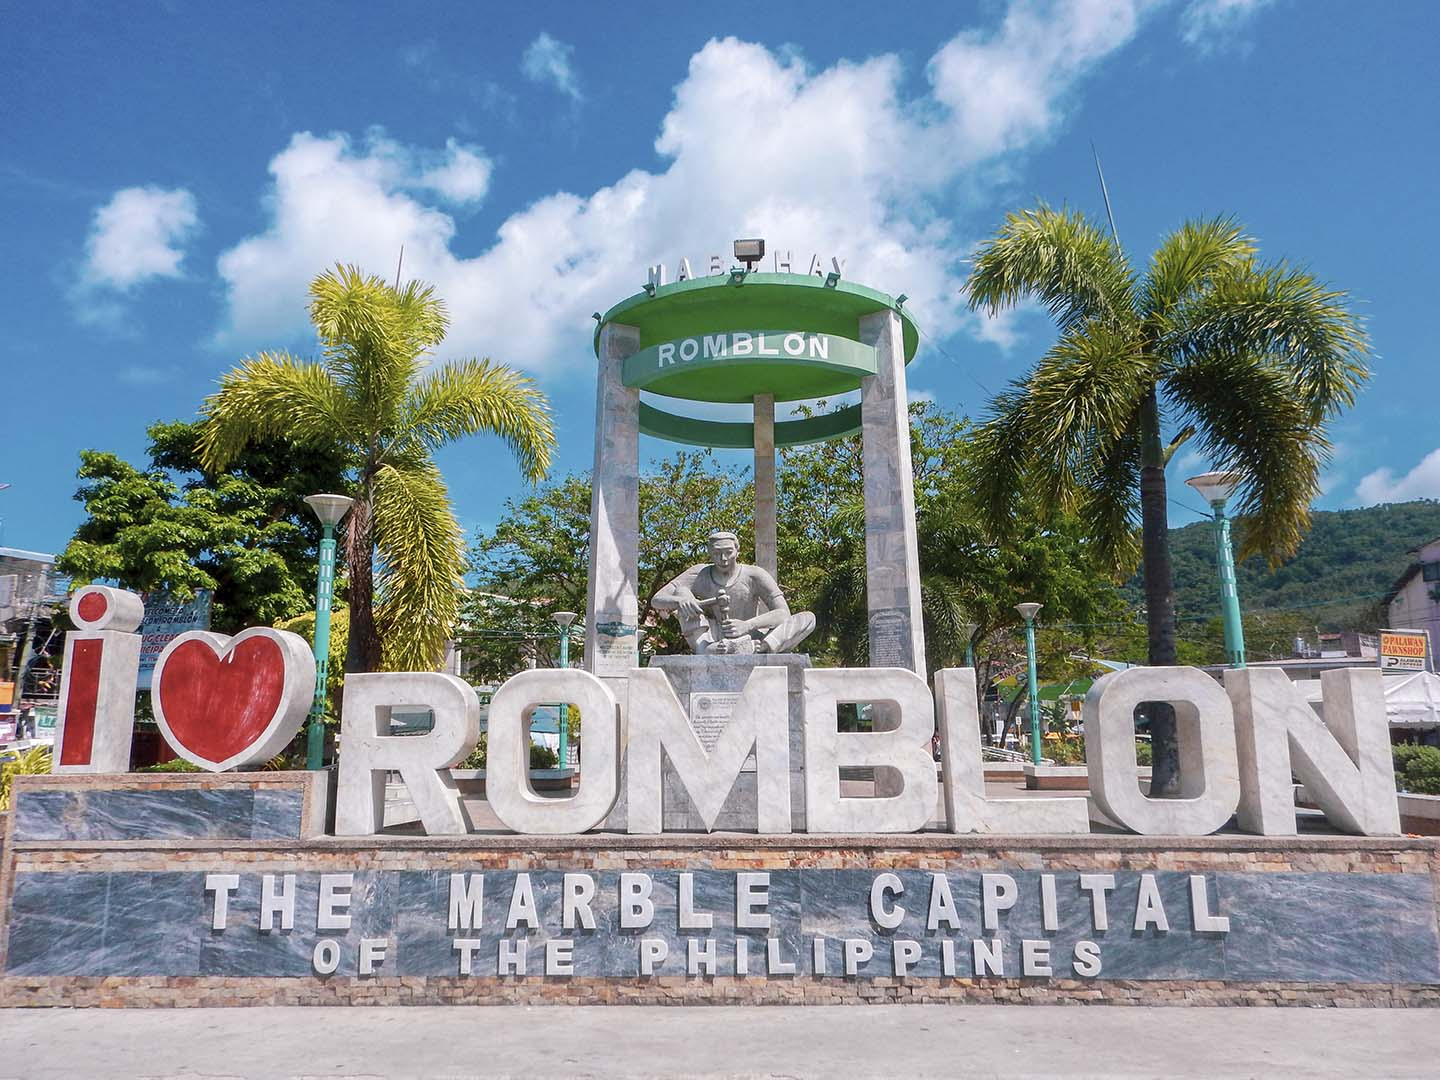 I love Romblon, the marble capital of the Philipppines